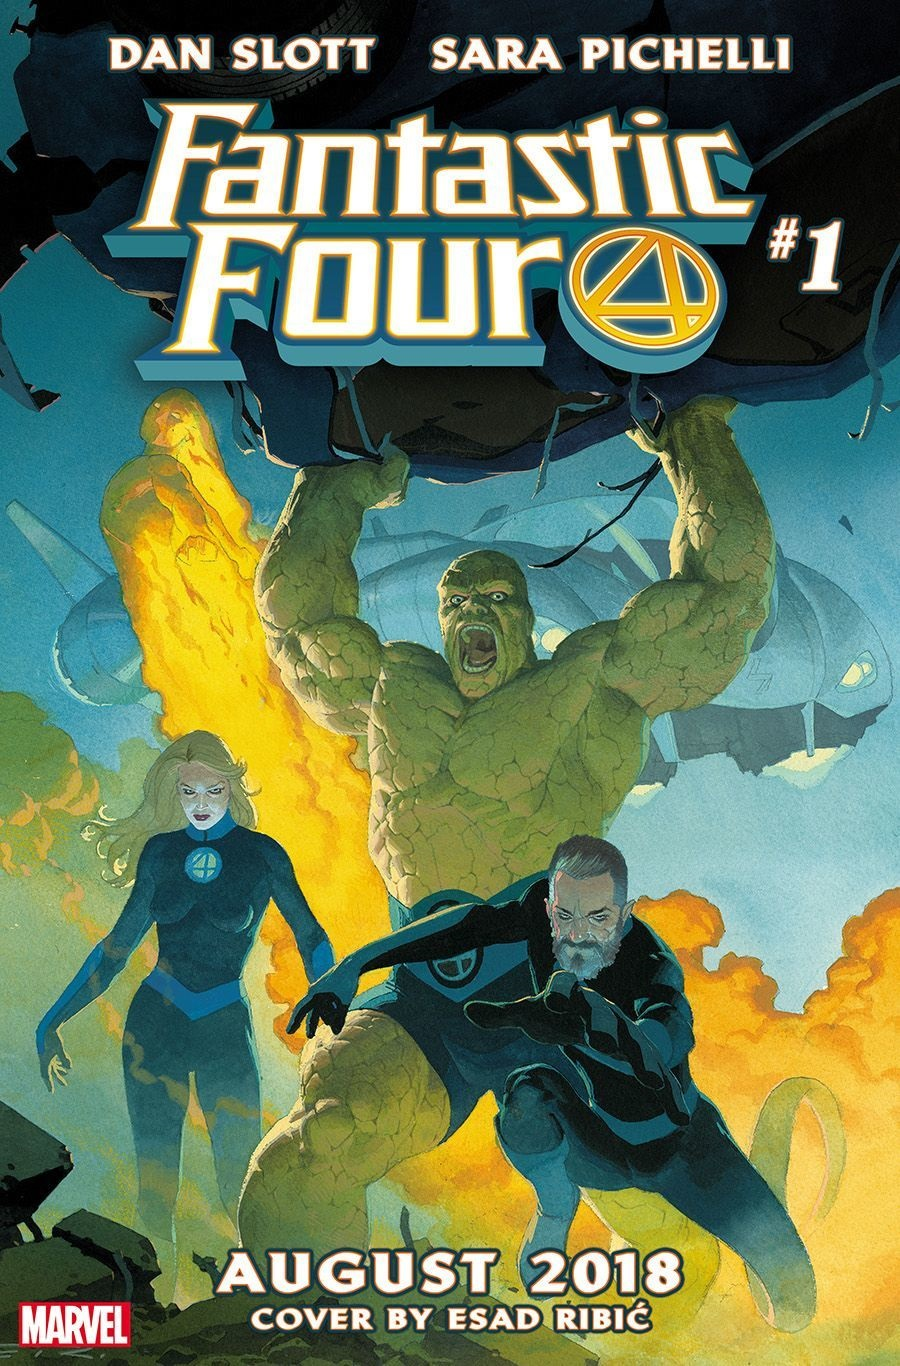 The Fantastic Four cover by Esad Ribic